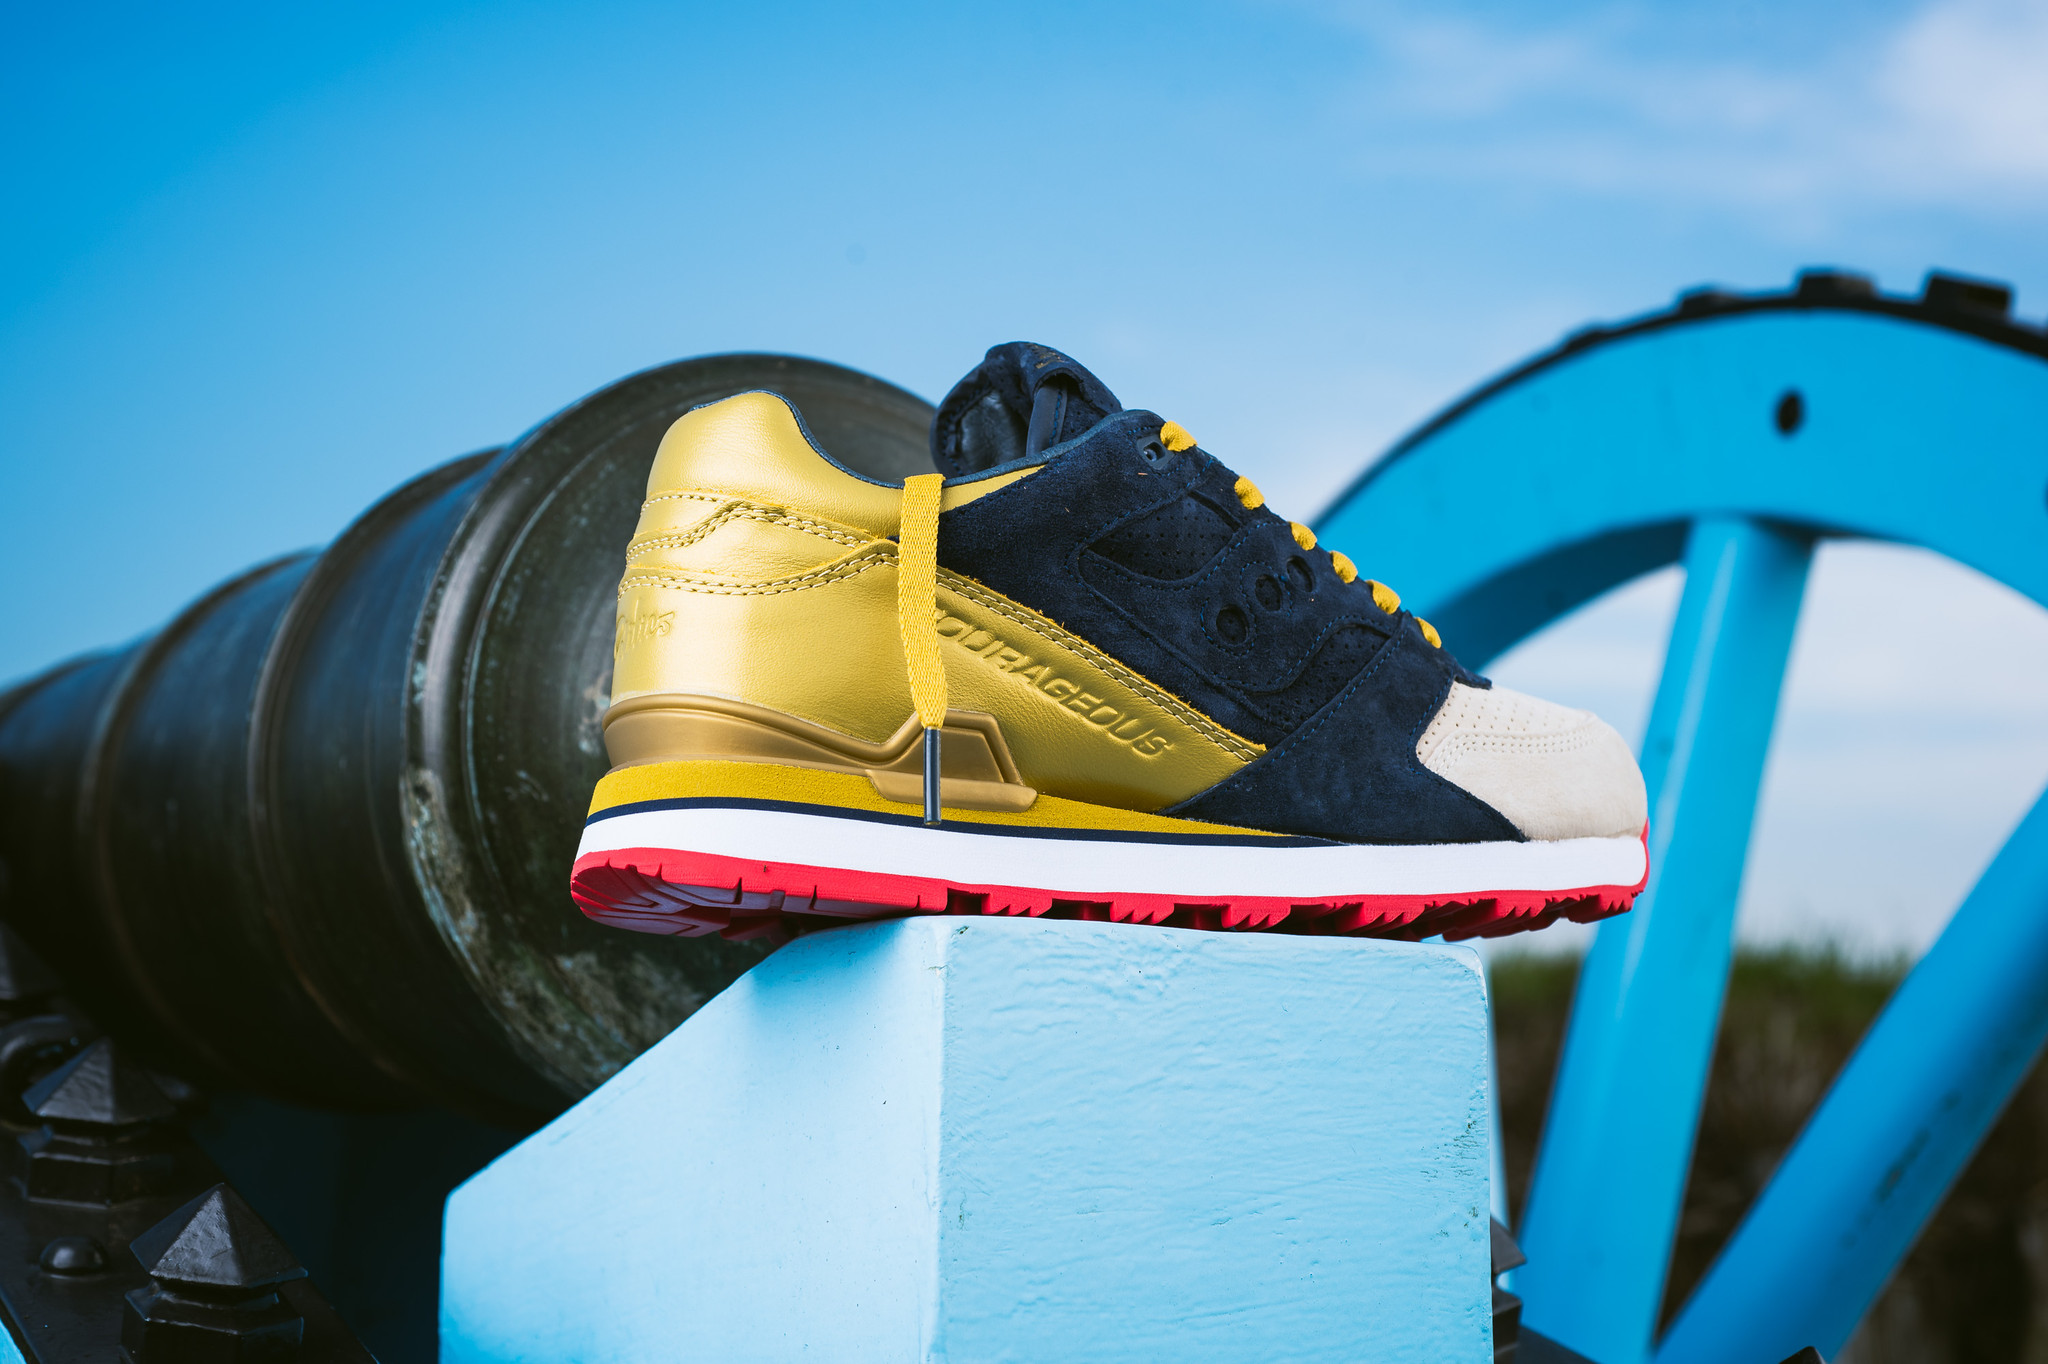 Sneaker_POlitics_X_Saucony_Courageous_Andrew_Jackson_Sneaker_POlitics_Battle_of_New_Orleans_Nola_11